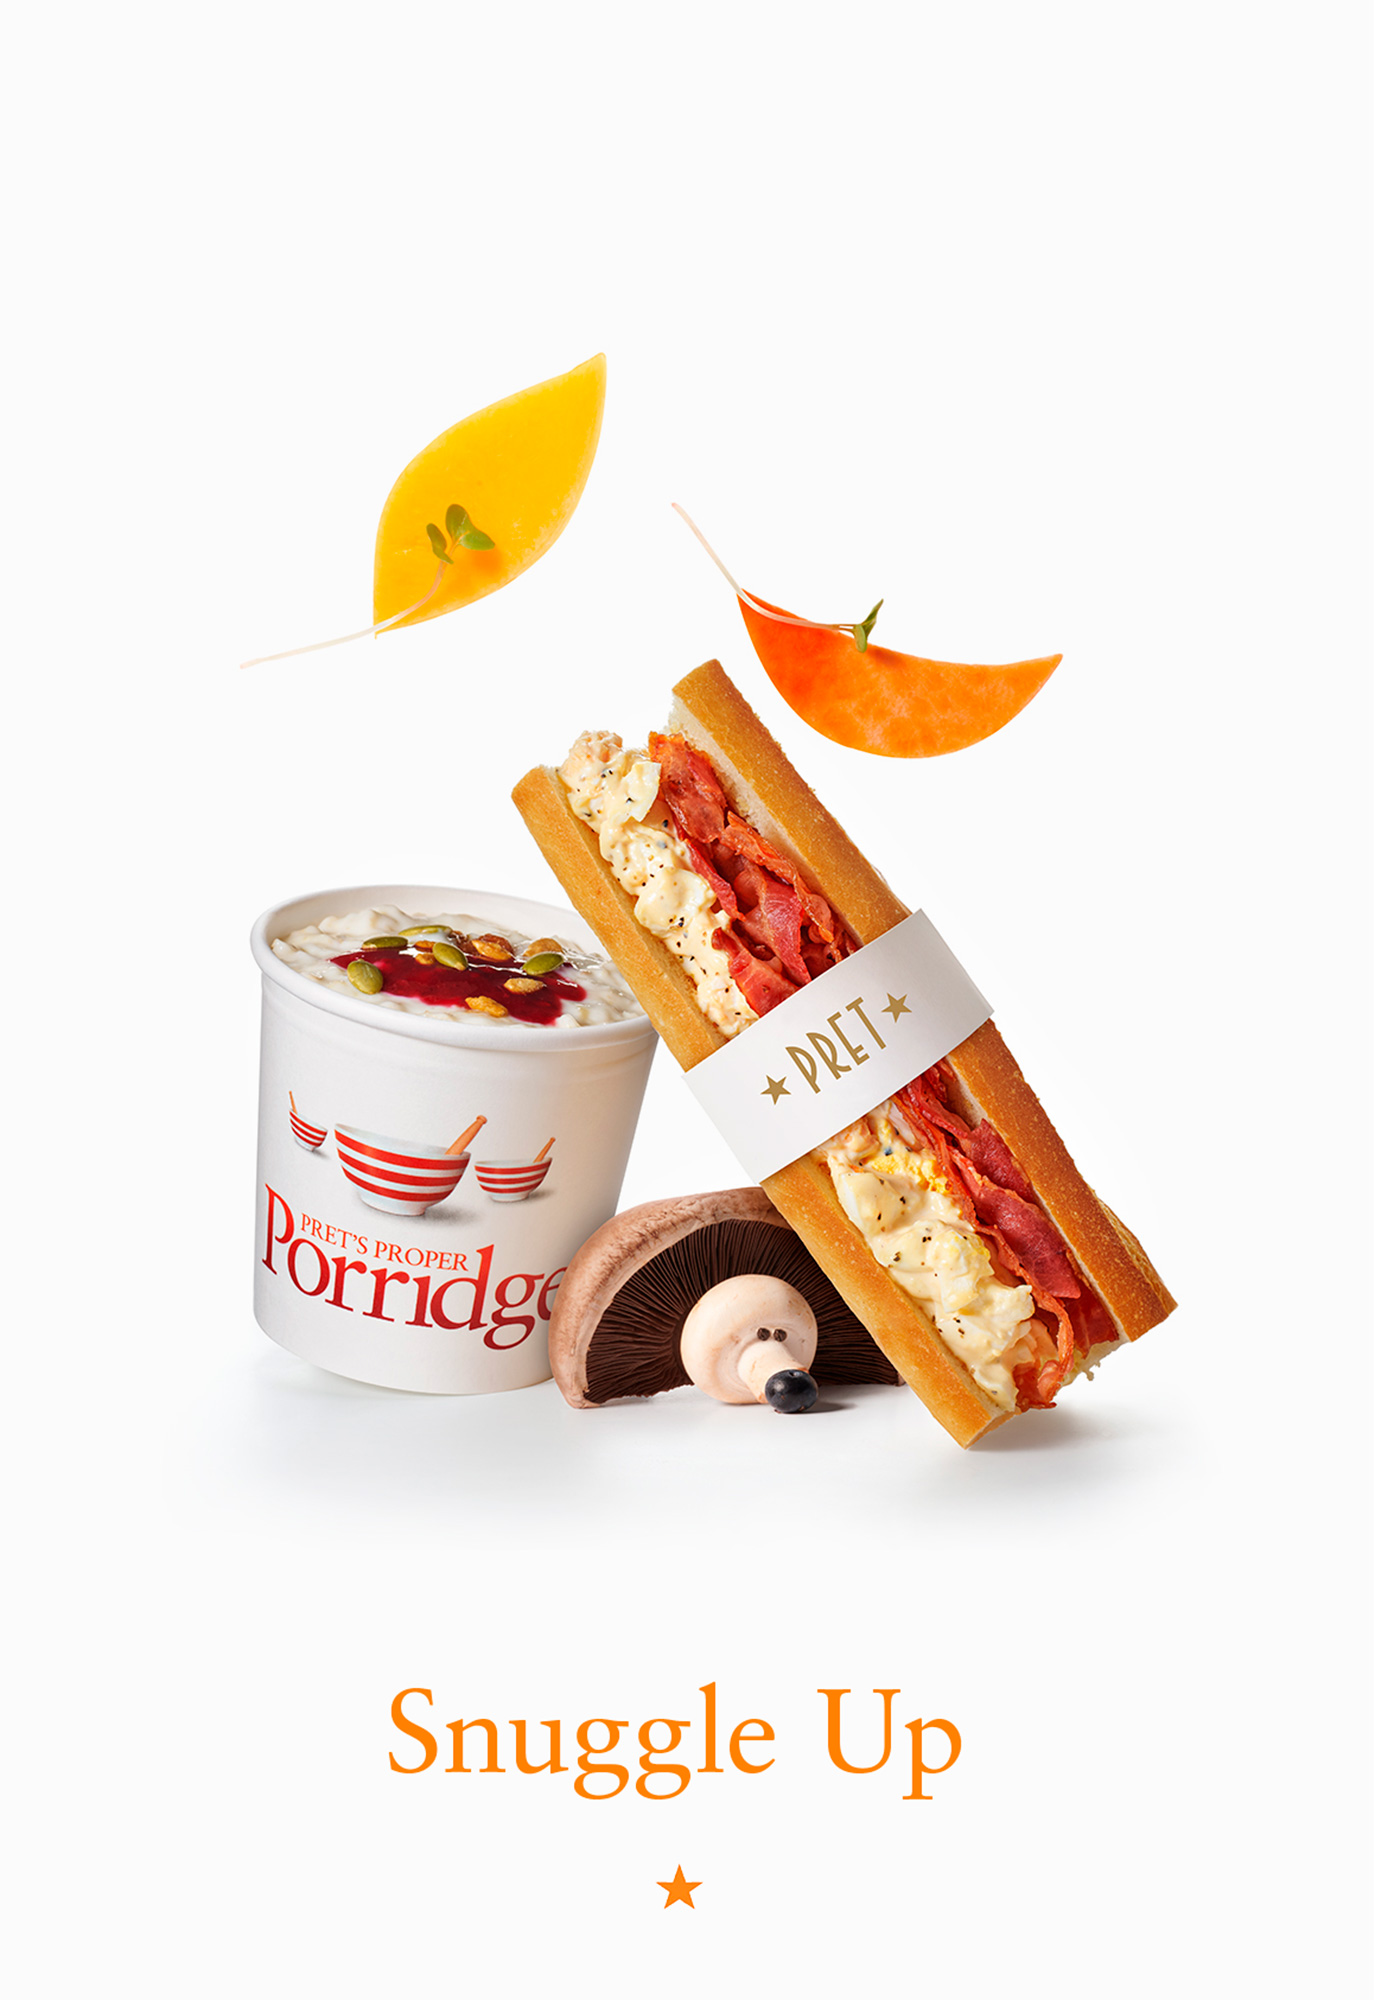 Pret-Snuggle-up